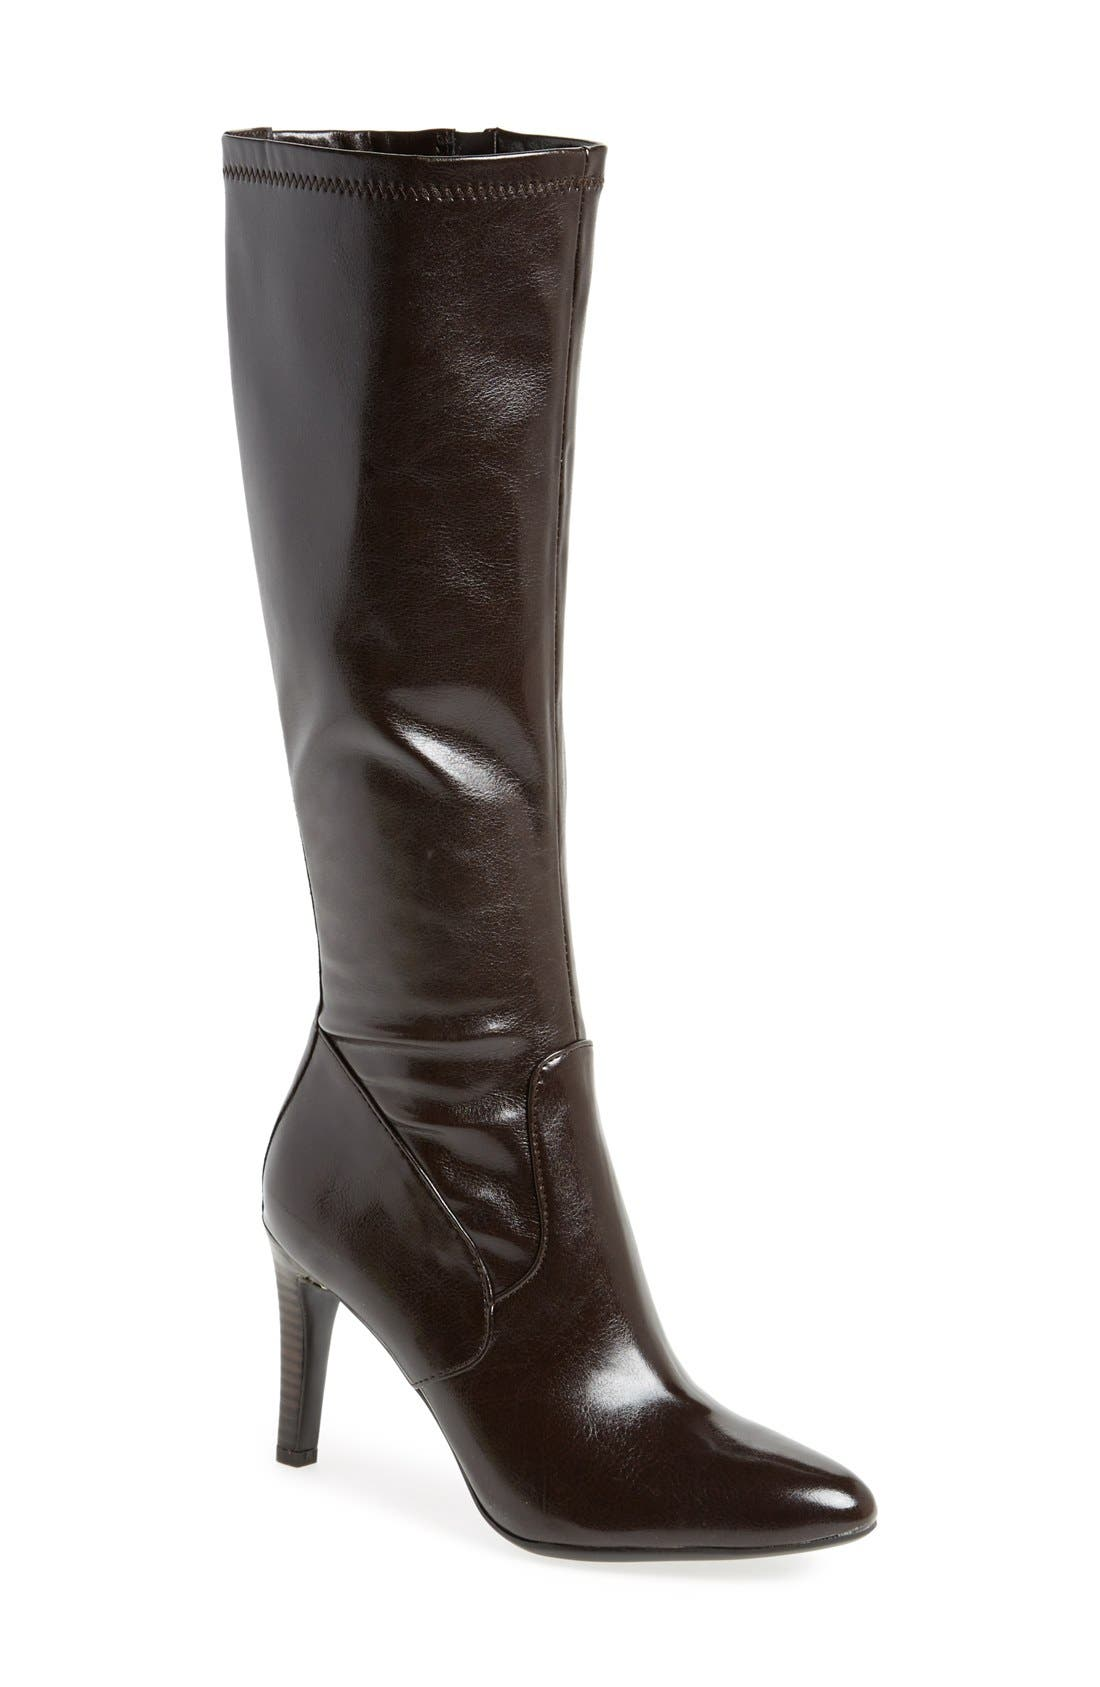 Main Image - Franco Sarto 'Coralla' Tall Boot (Women)